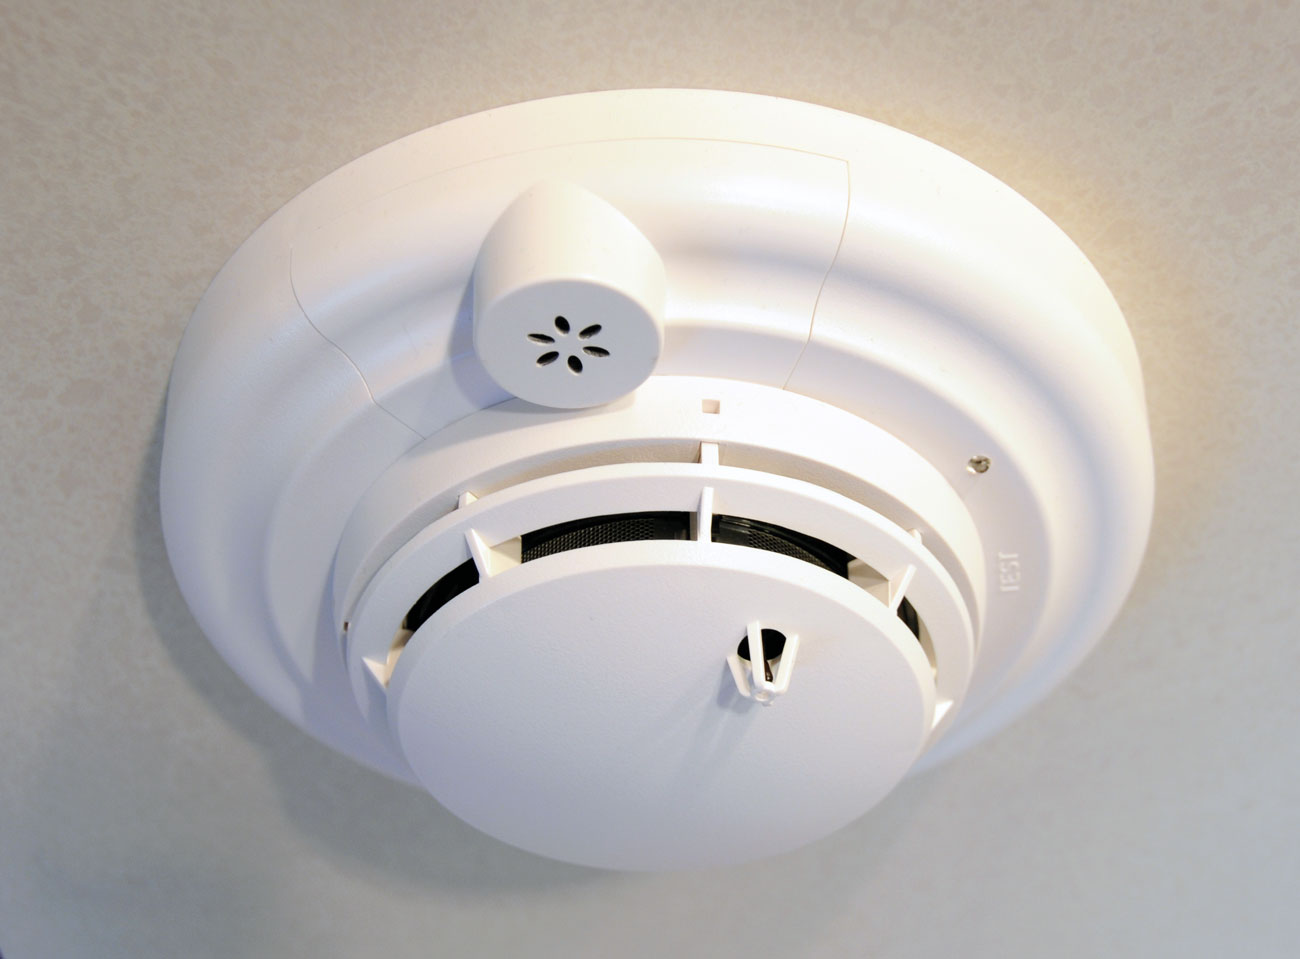 The combination of technologies used in multi-sensor fire detectors allows for greater precision and can help reduce nuisance alarms.